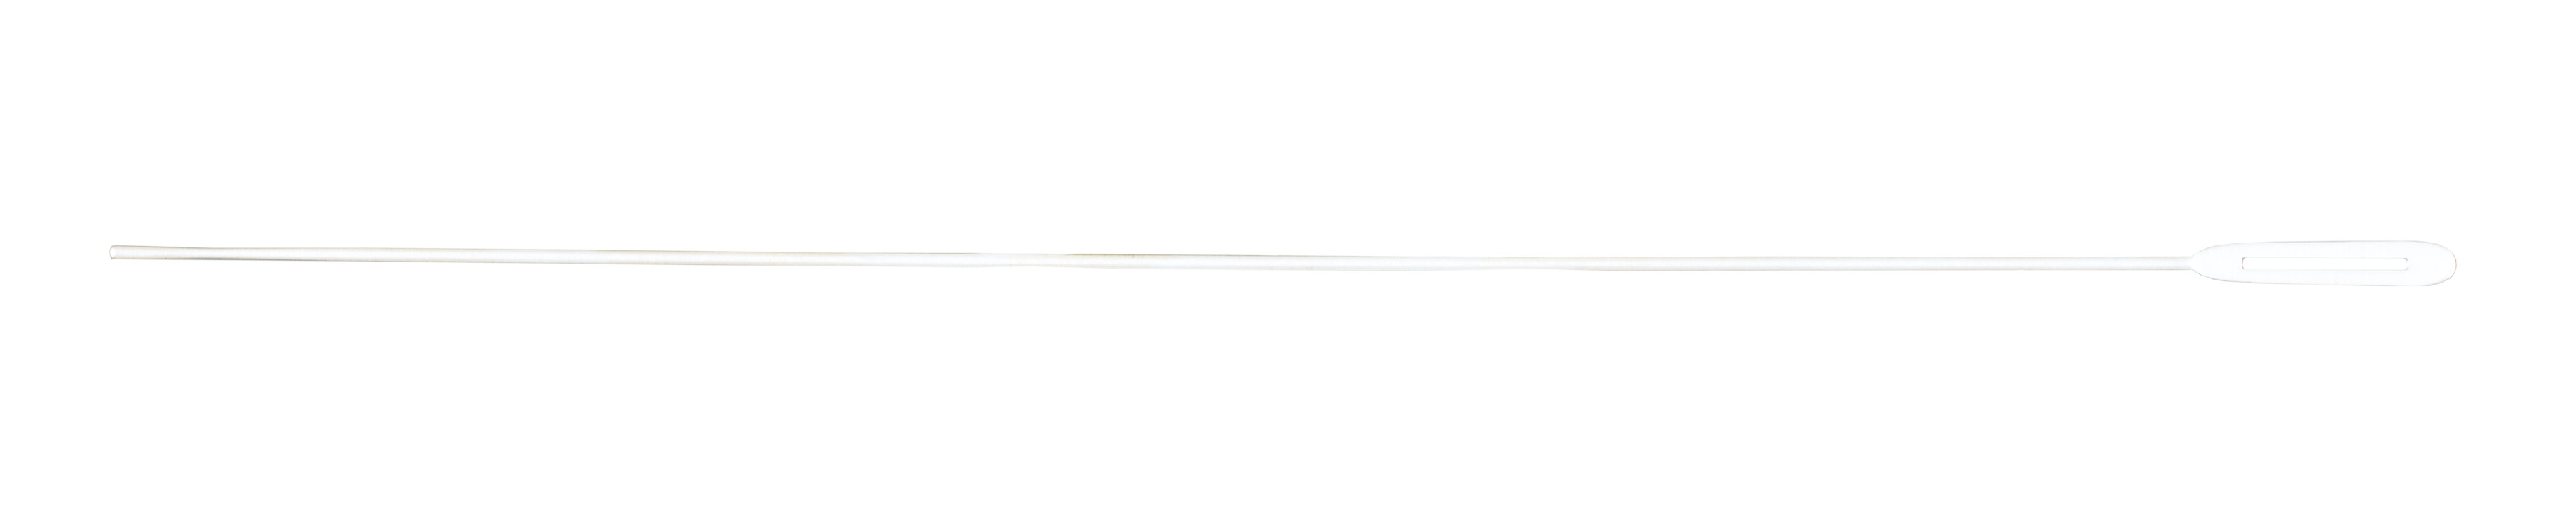 miltex-probes-with-eye-malleable-10-254-cm-sterling-10-34-st-miltex.jpg